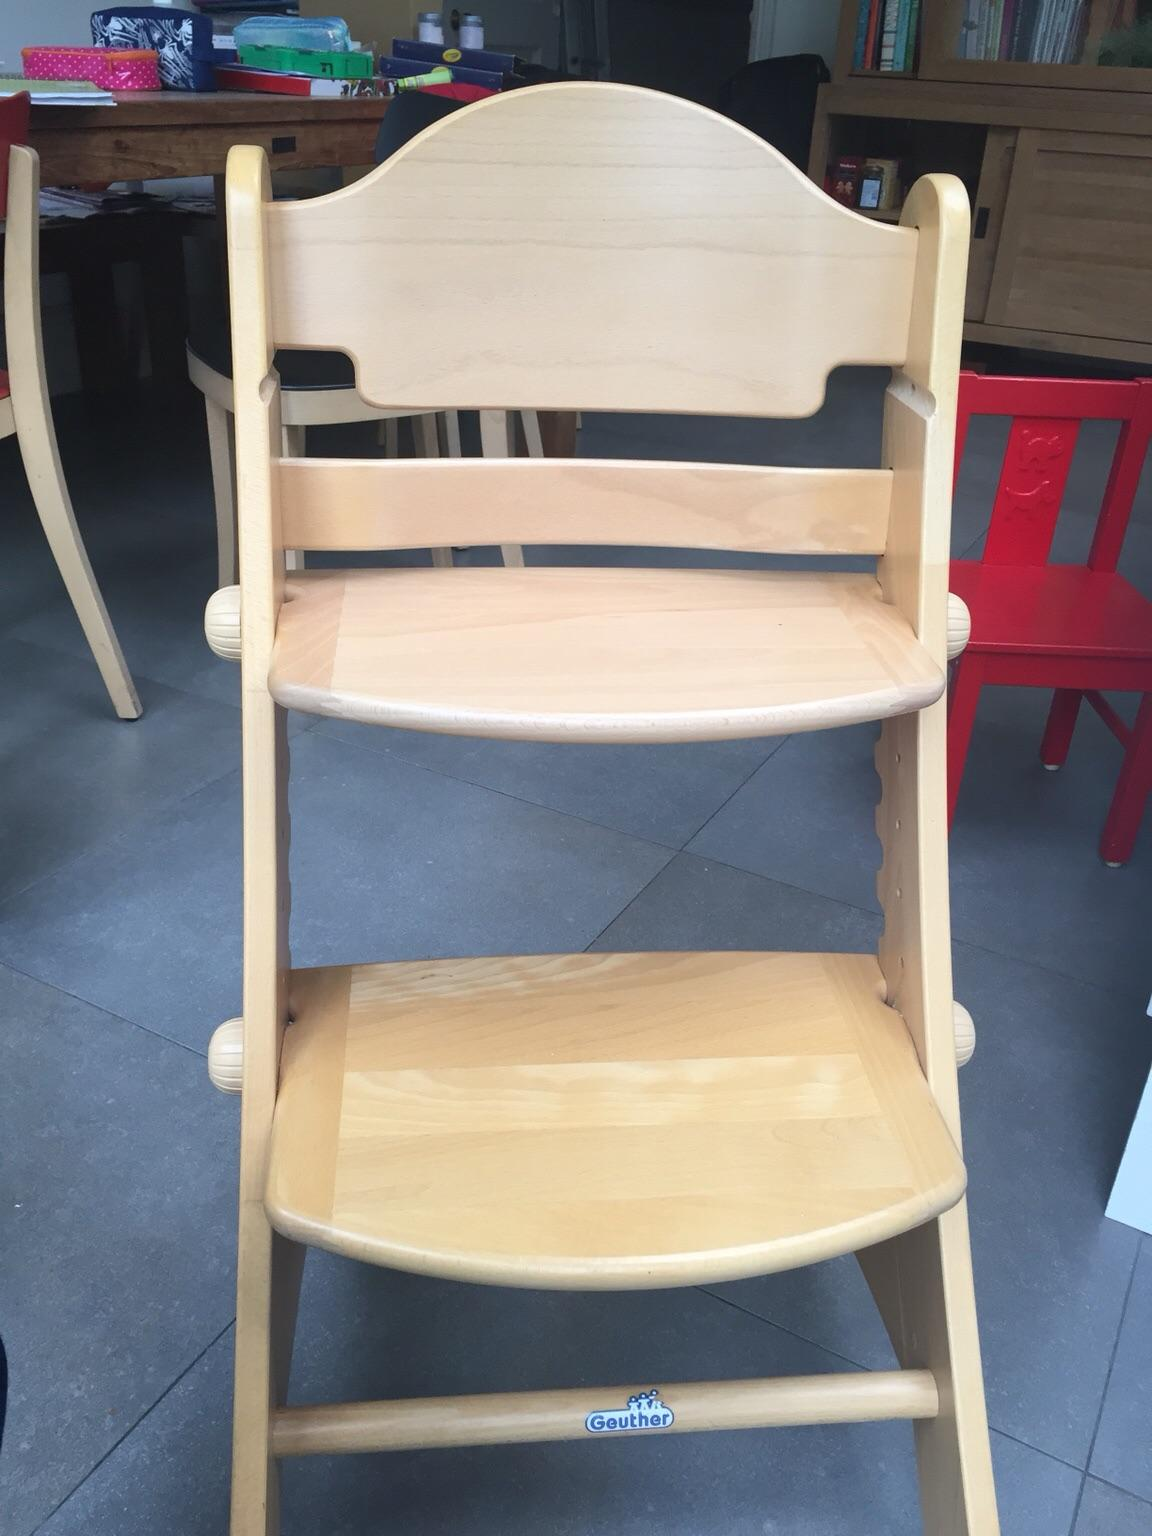 Geuther swing adjustable wooden high chair